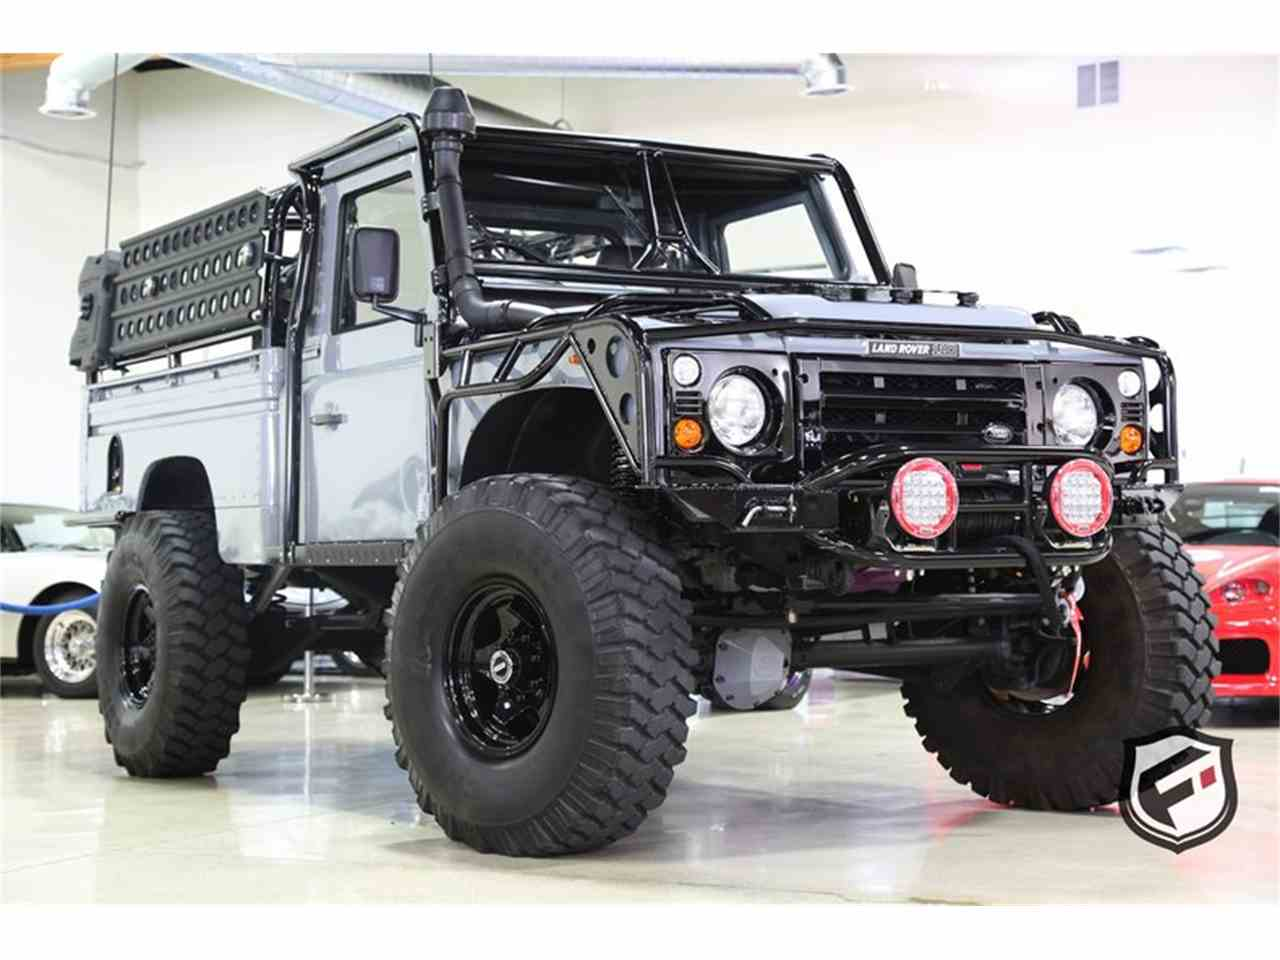 1984 land rover defender 110 high capacity pickup truck for sale cc 945092. Black Bedroom Furniture Sets. Home Design Ideas